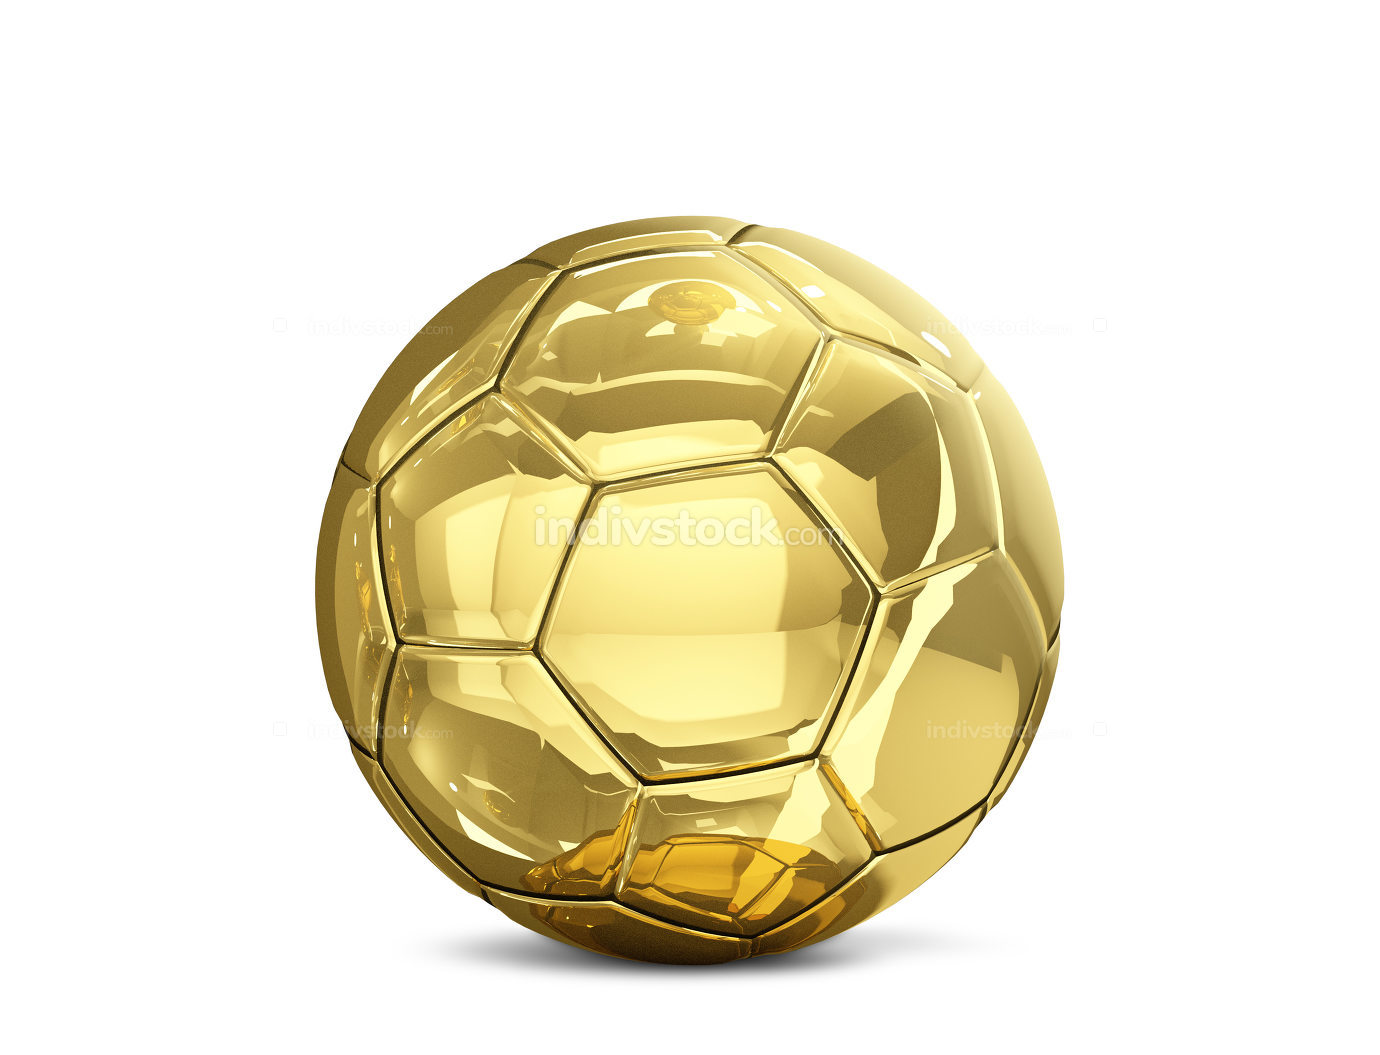 soccer football ball golden 3d rendering isolated